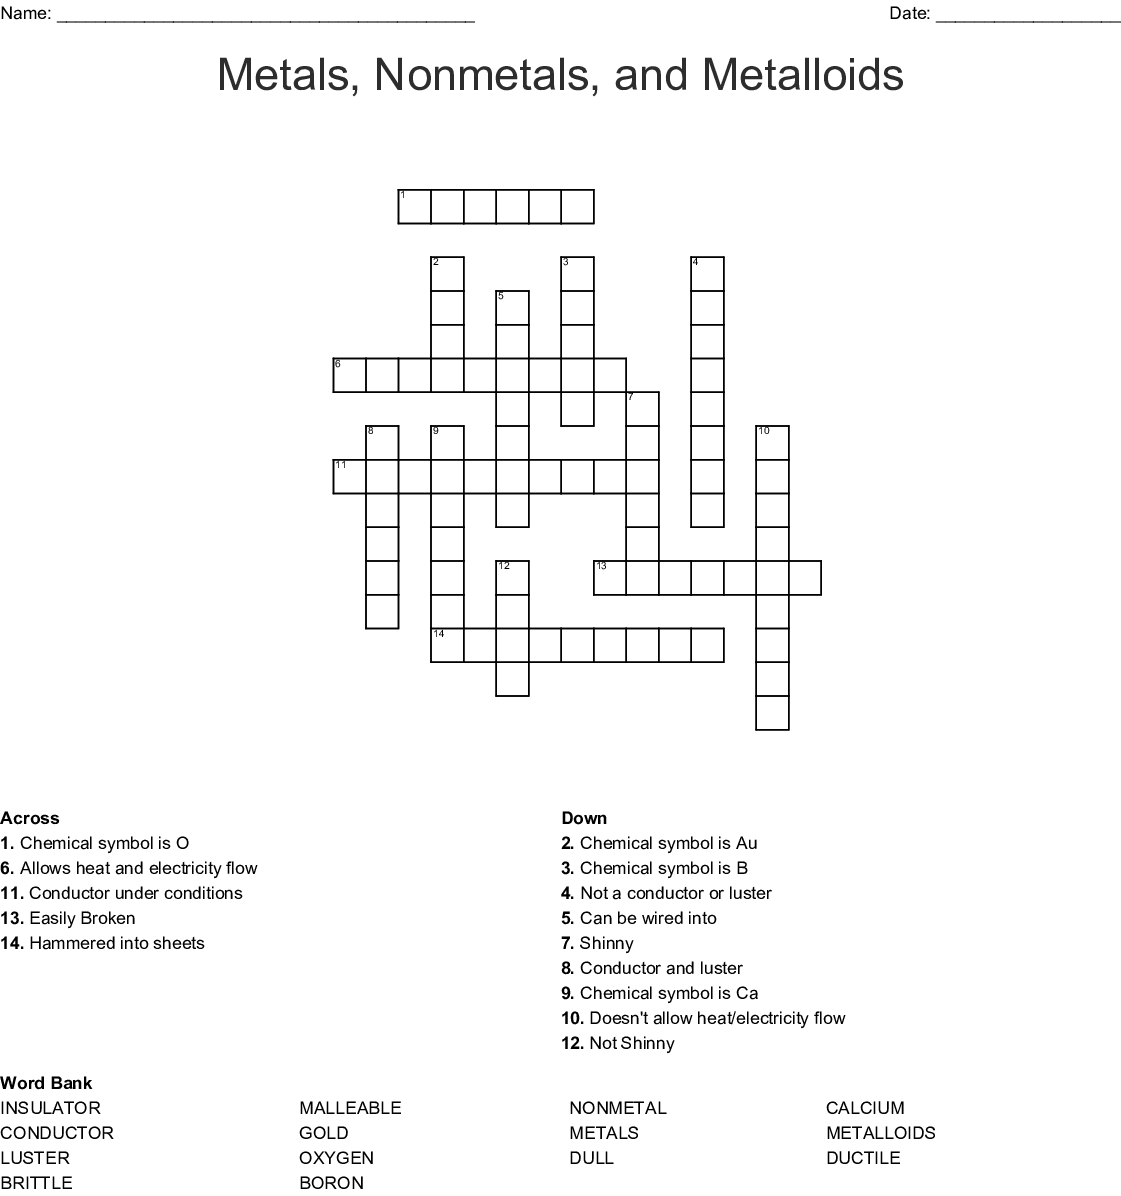 Metals Nonmetals And Metalloids Crossword